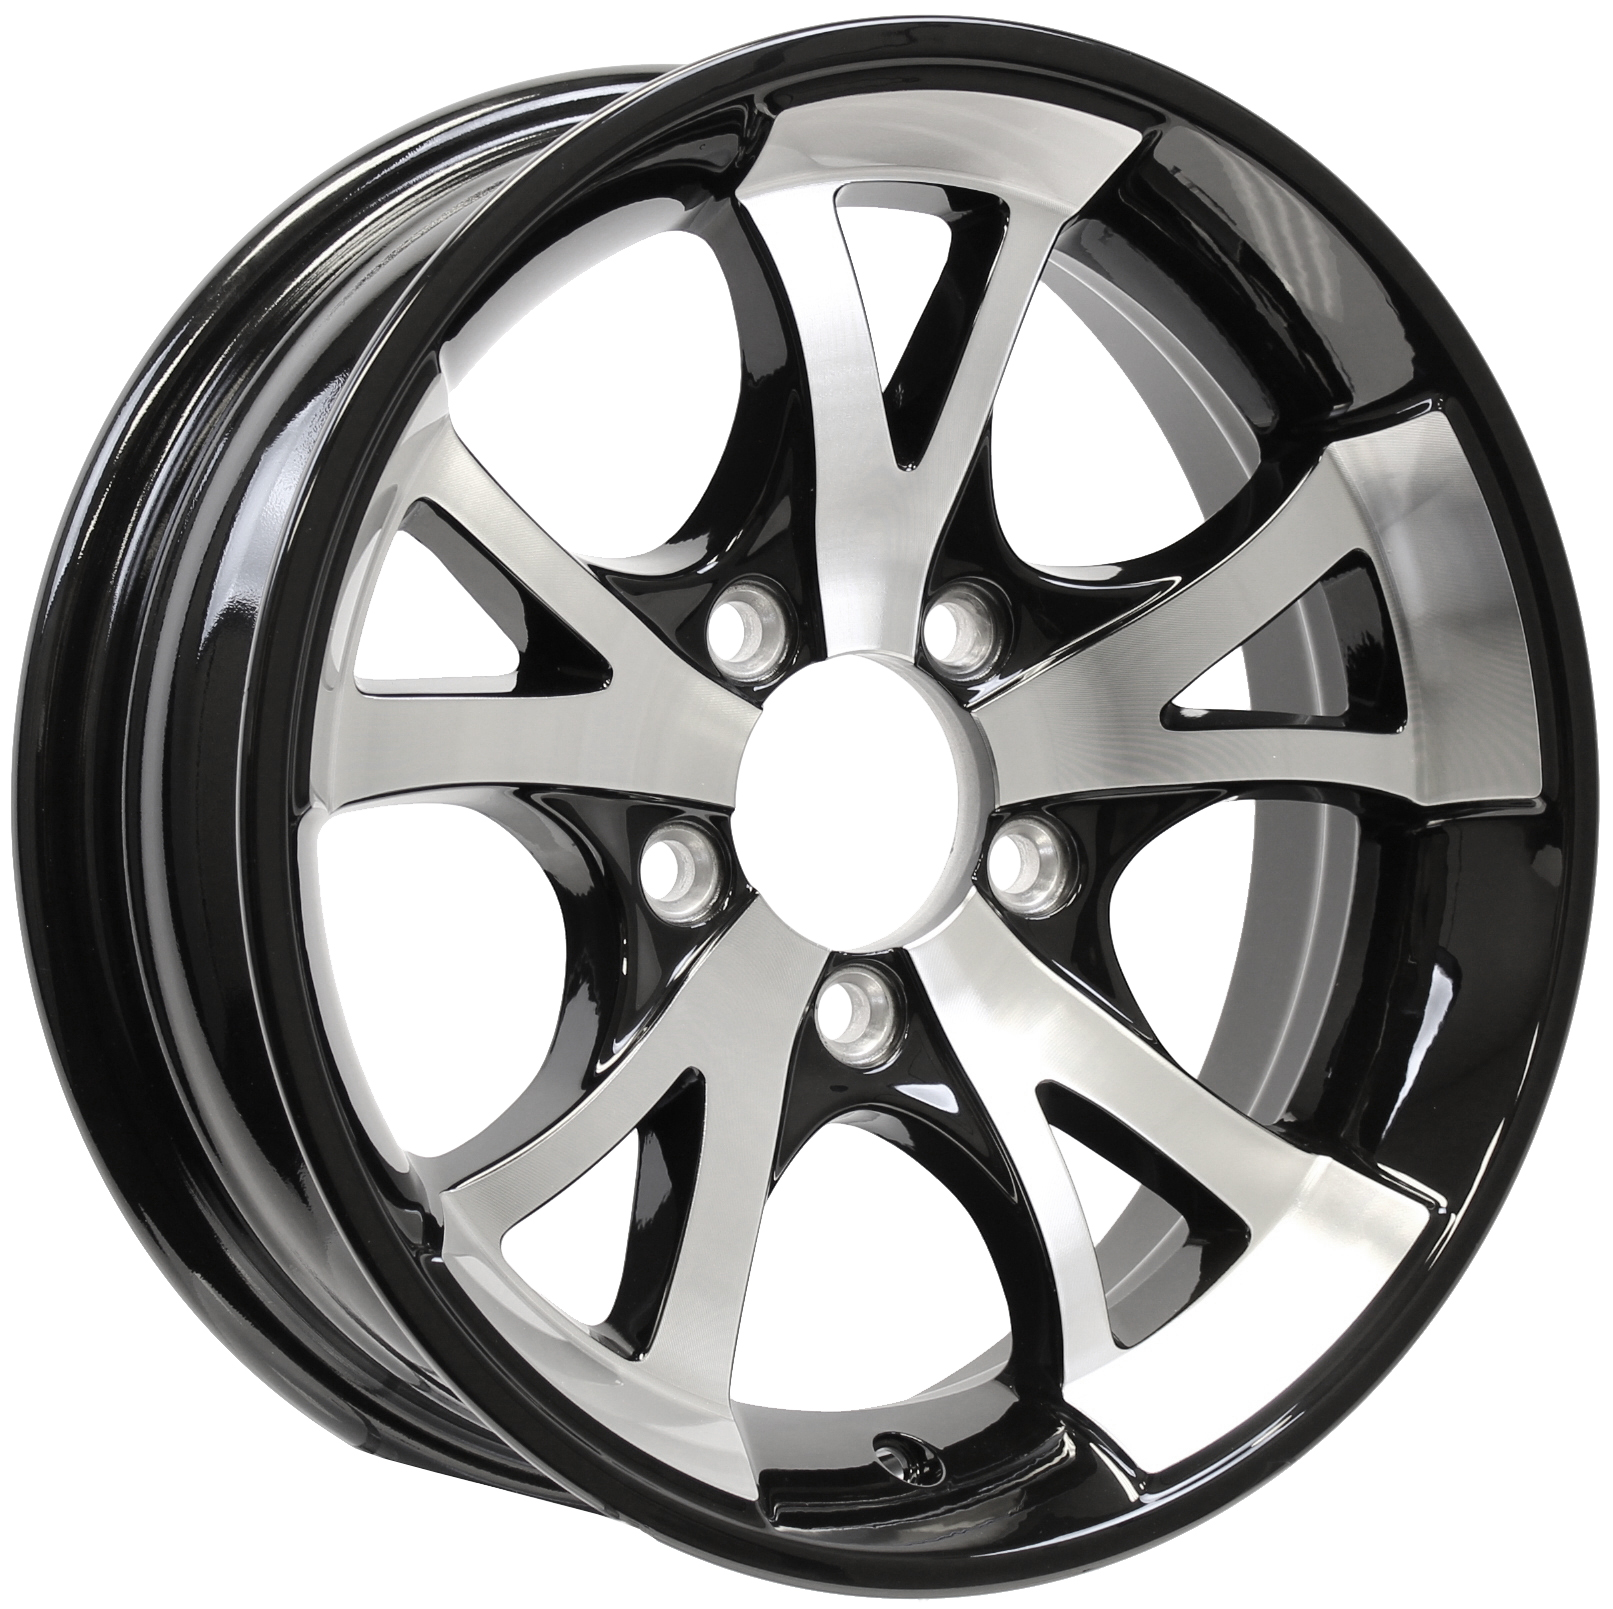 A1411 15x5 5-Lug Black Aluminum Trailer Wheel Image